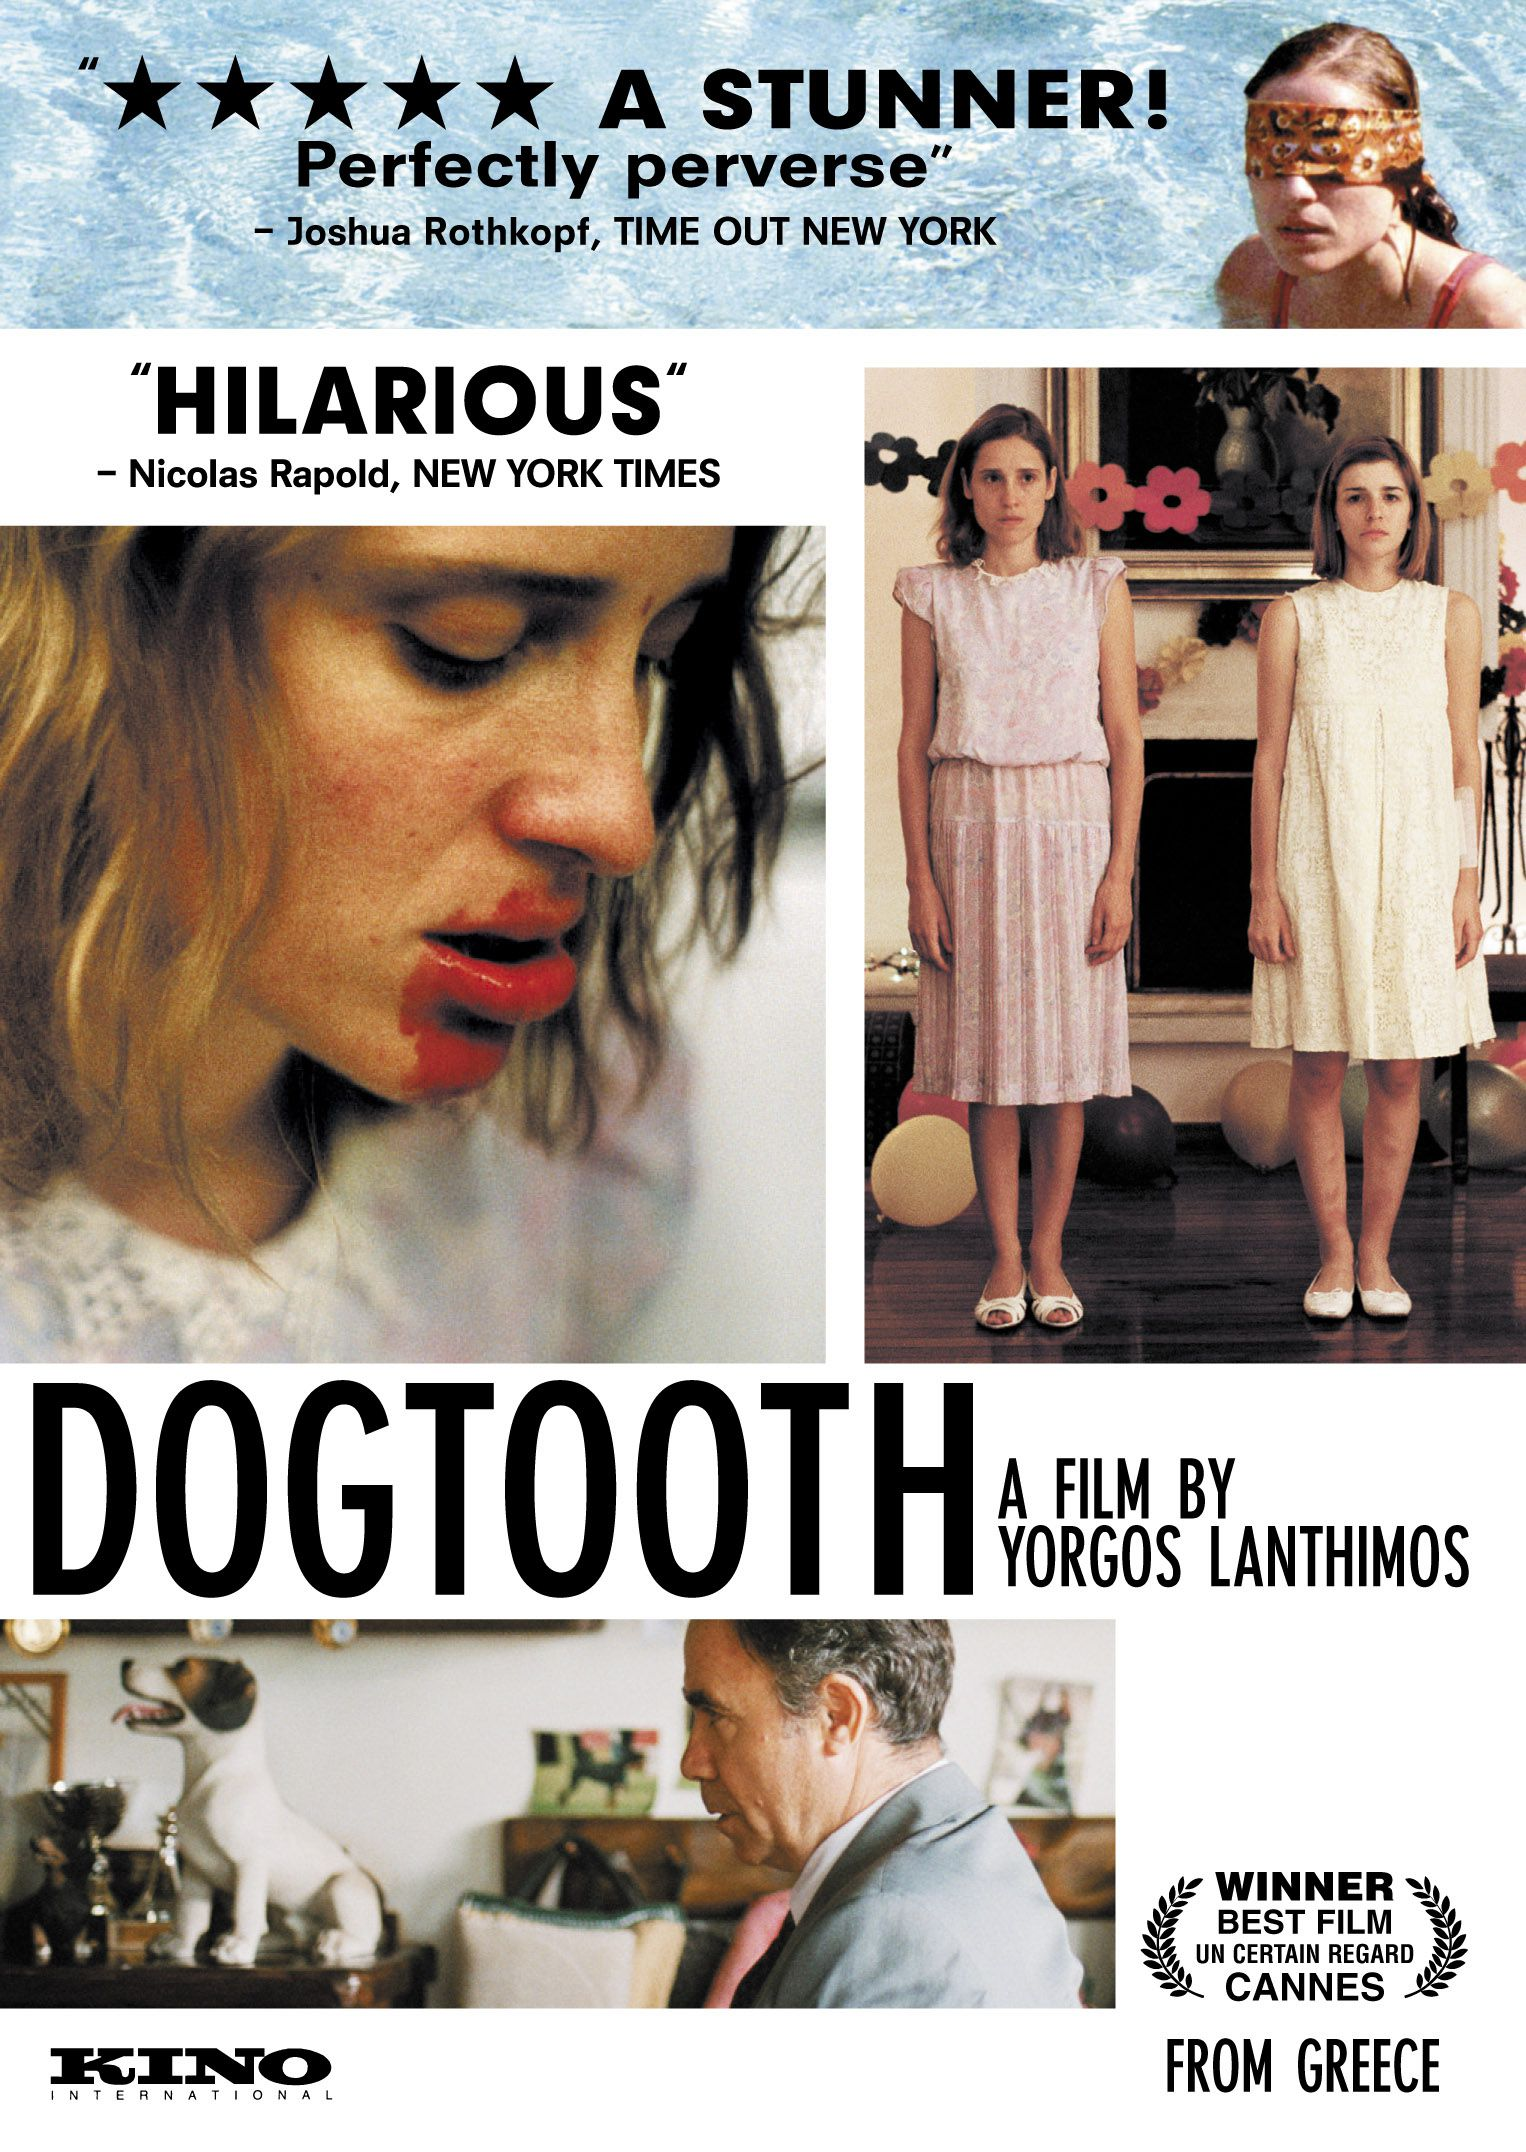 Publicity still for Dogtooth